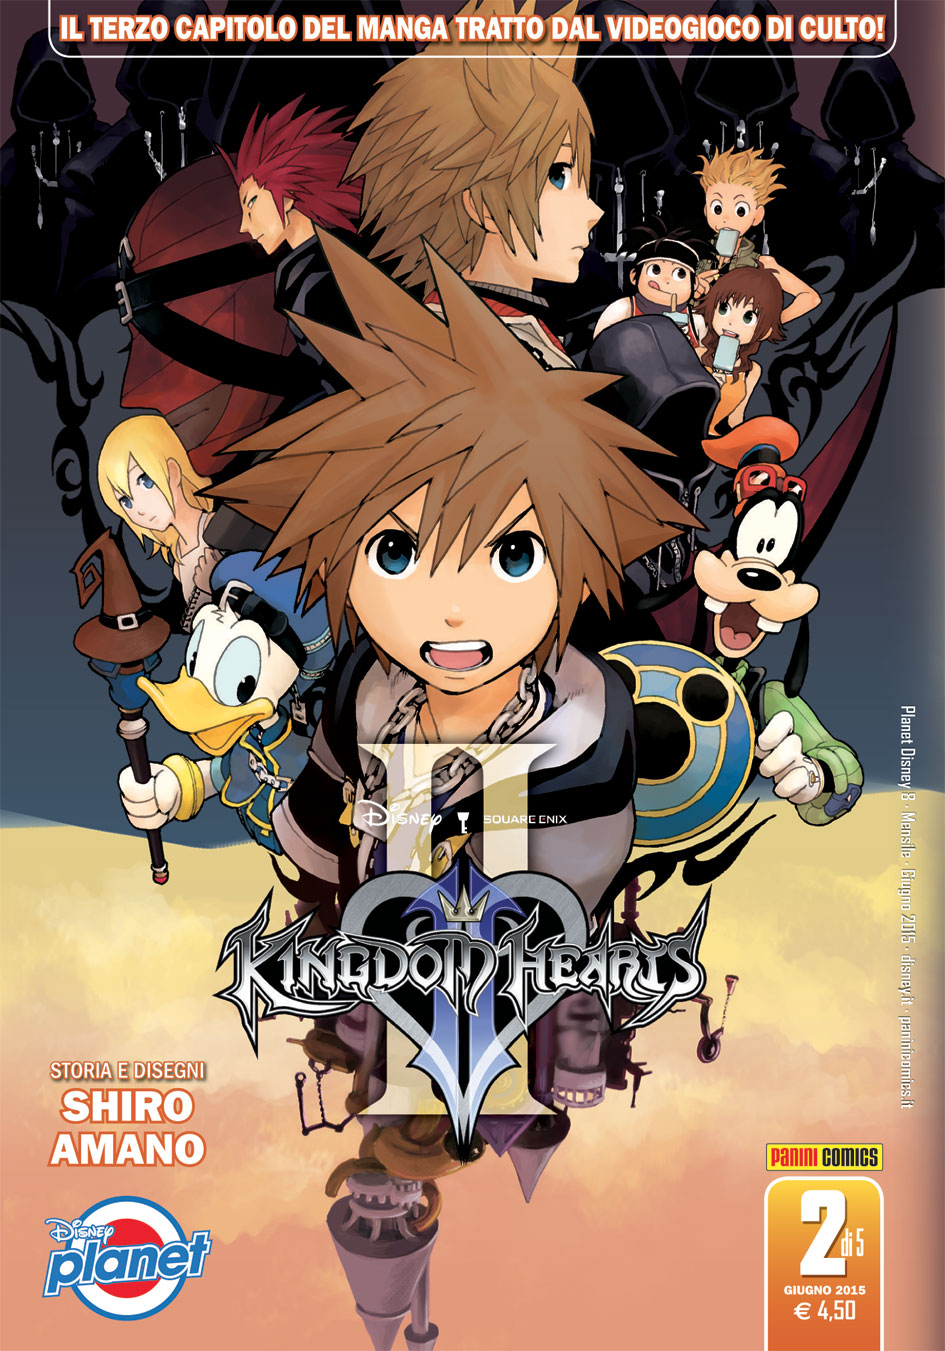 Cover Disney Planet 8 - Kingdom Hearts II - 2 di 5